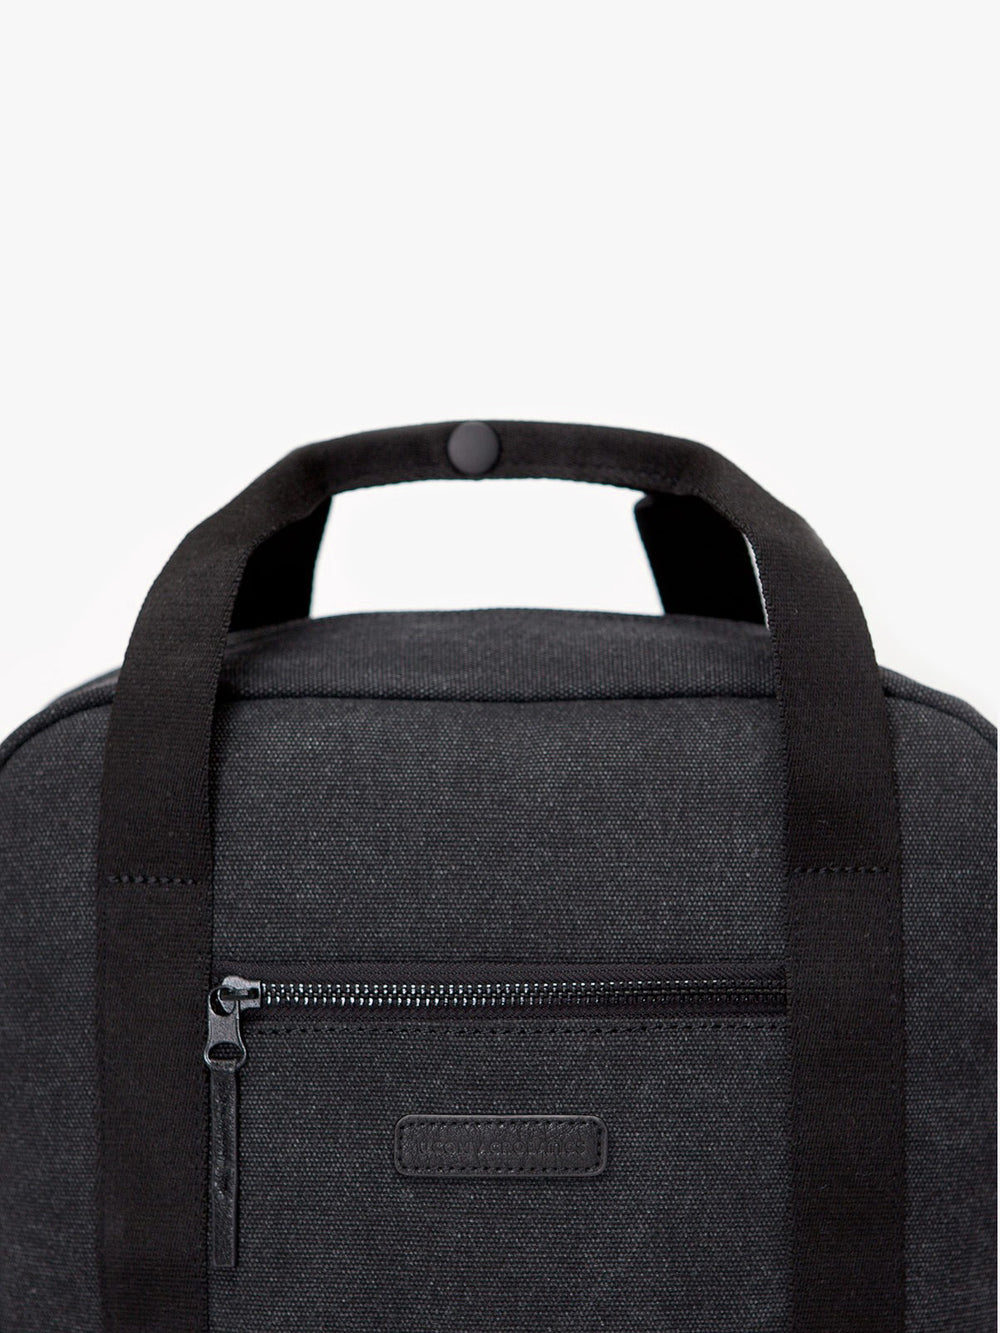 Ison backpack top handle and zipped pocket.